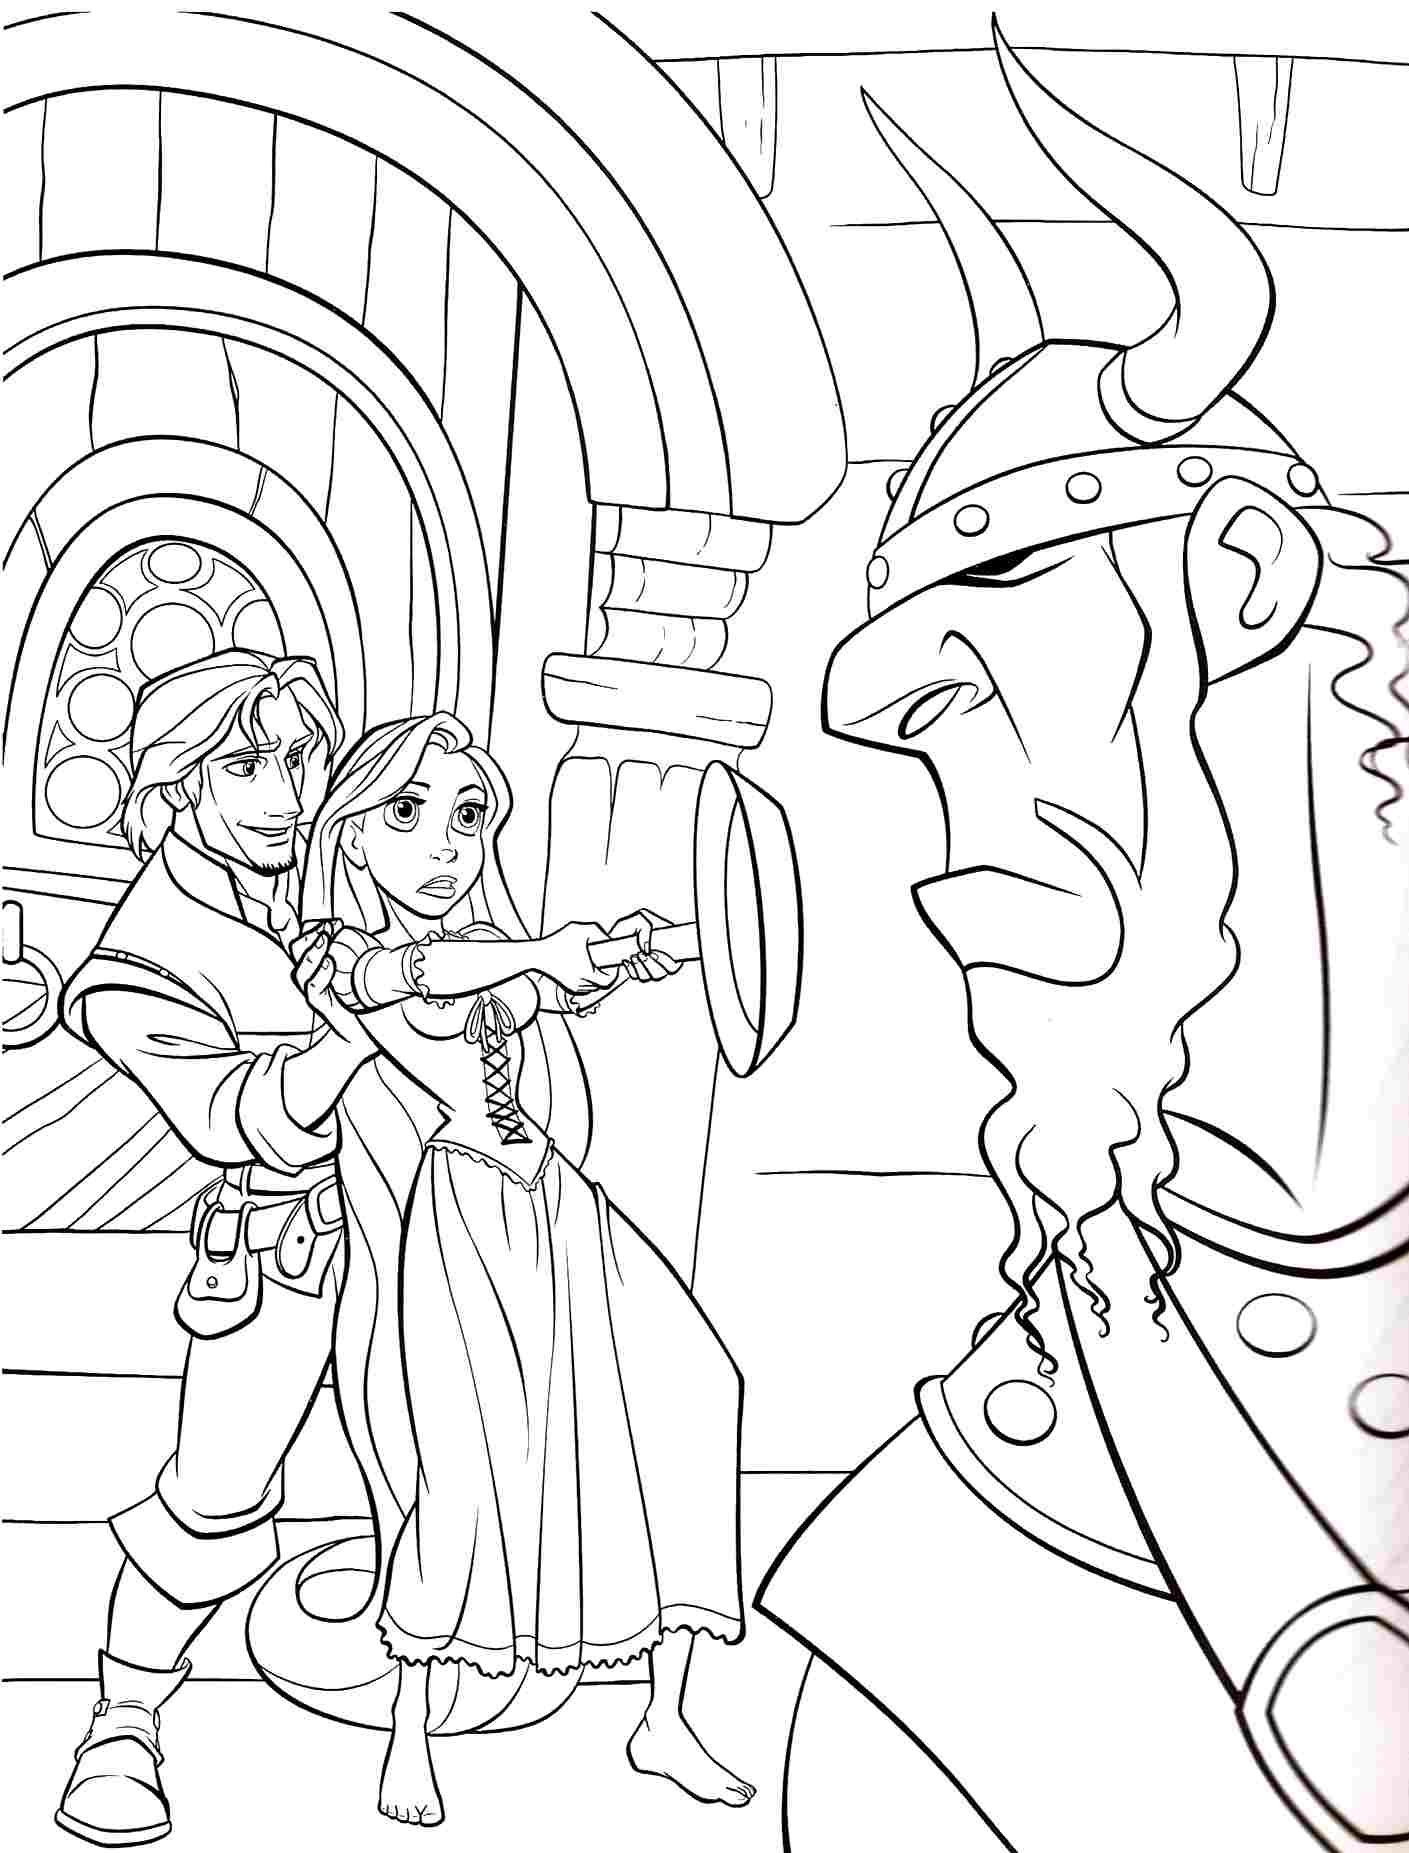 disney princess tangled rapunzel coloring pages free printable for boys girls